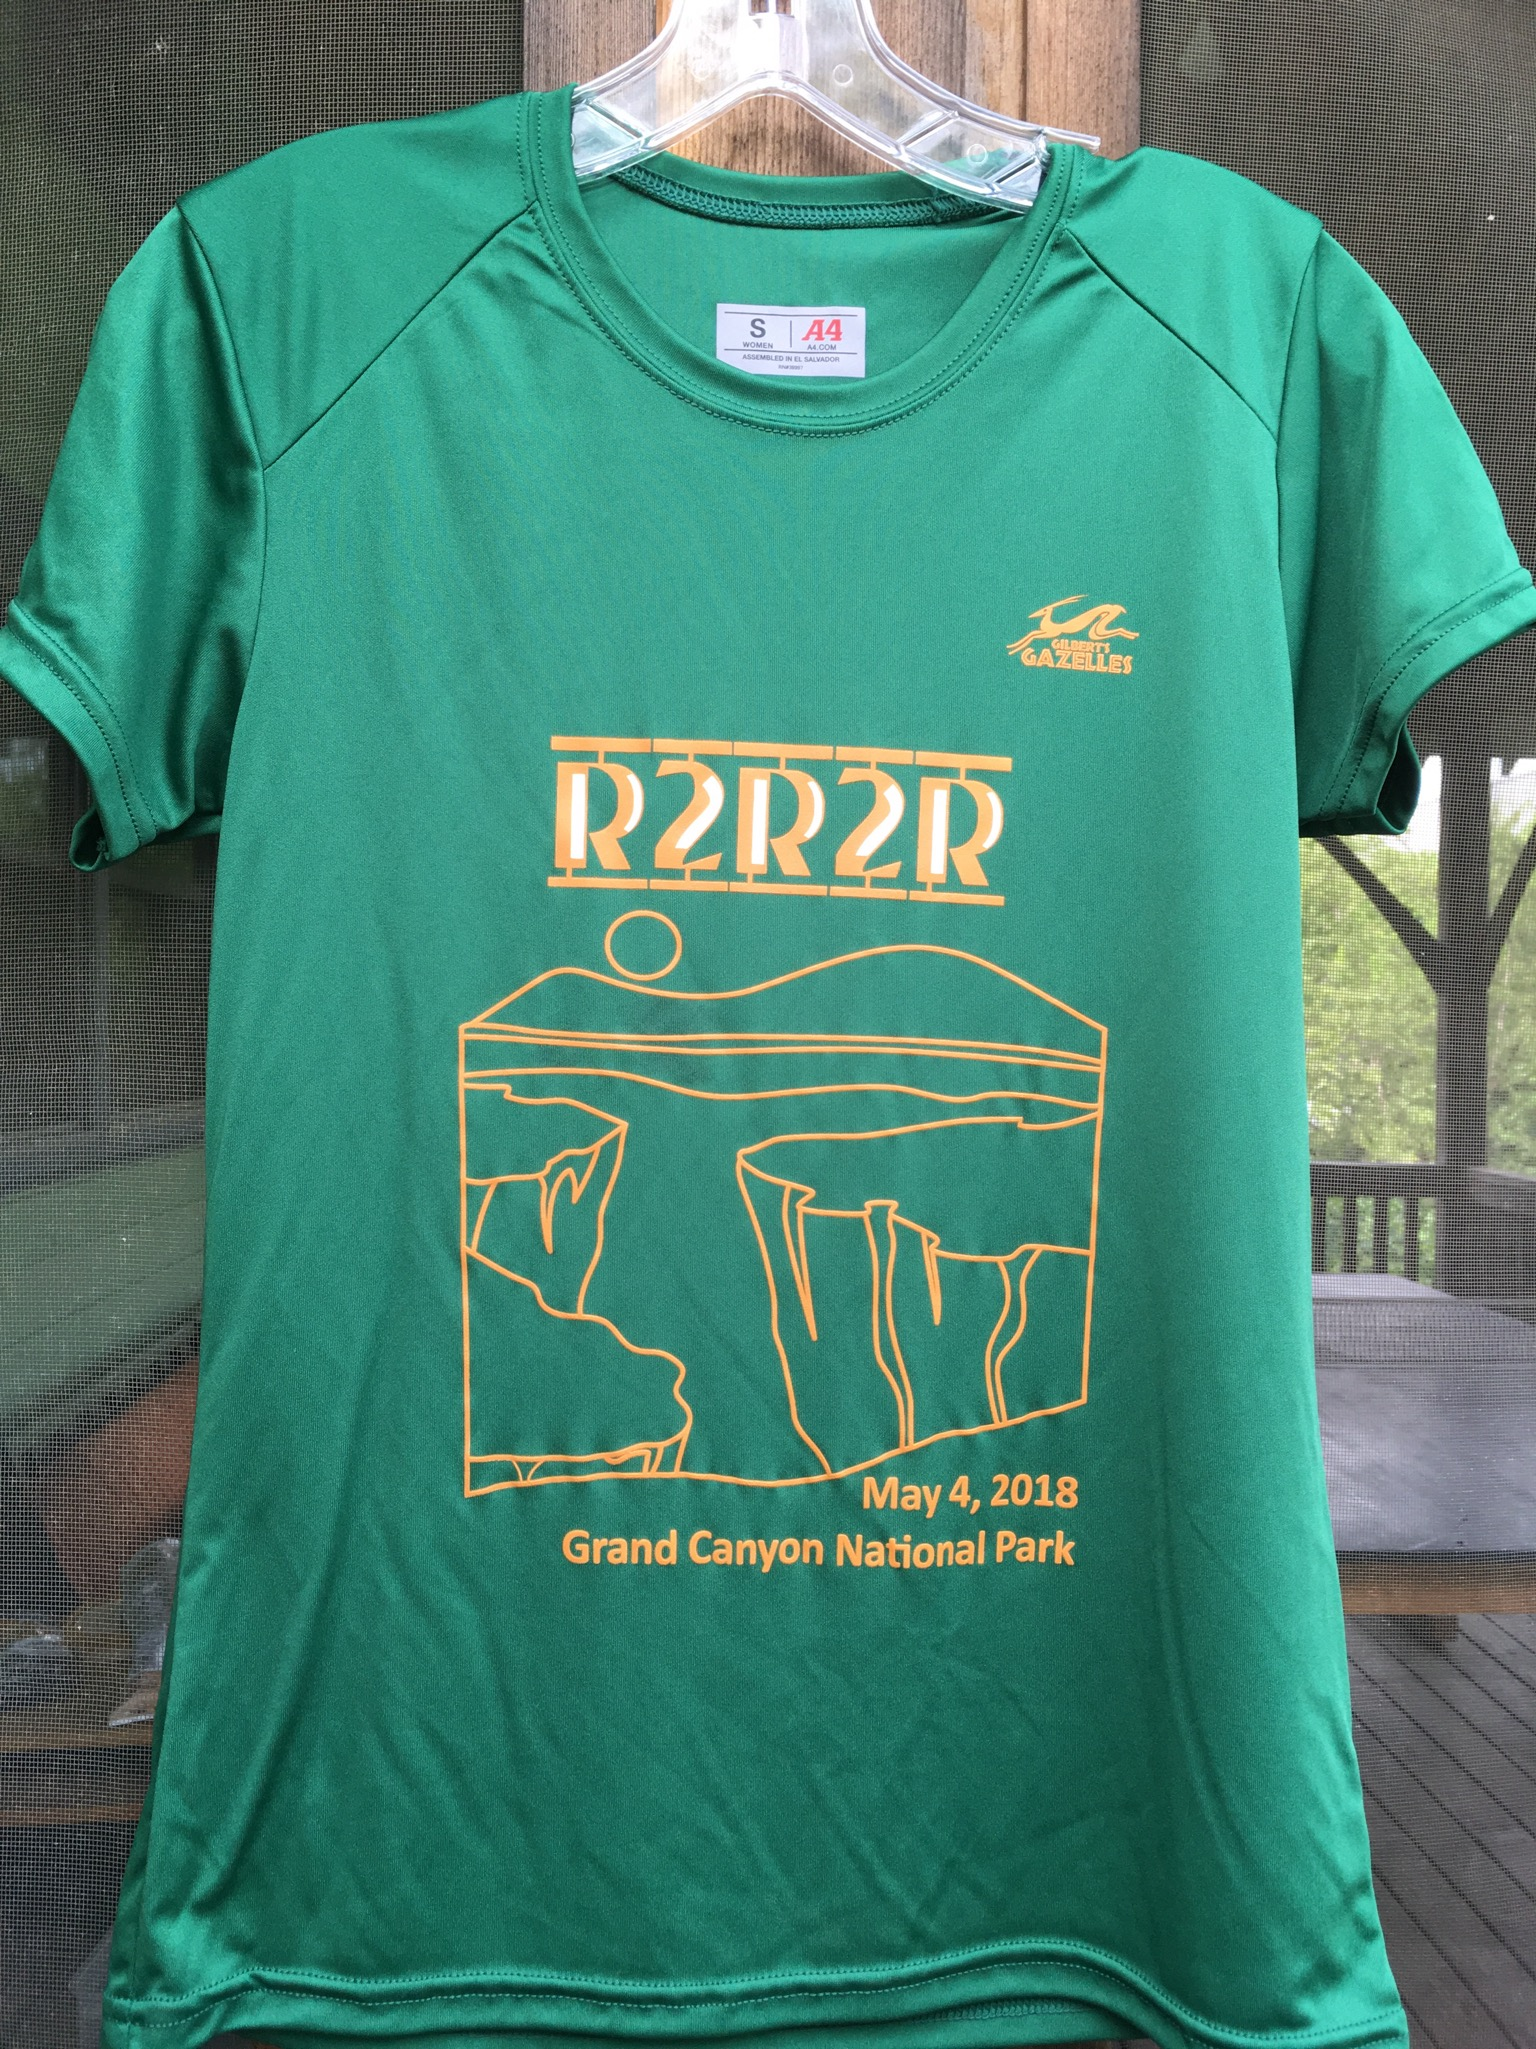 Shirt and slogan designed by Murphy Reed